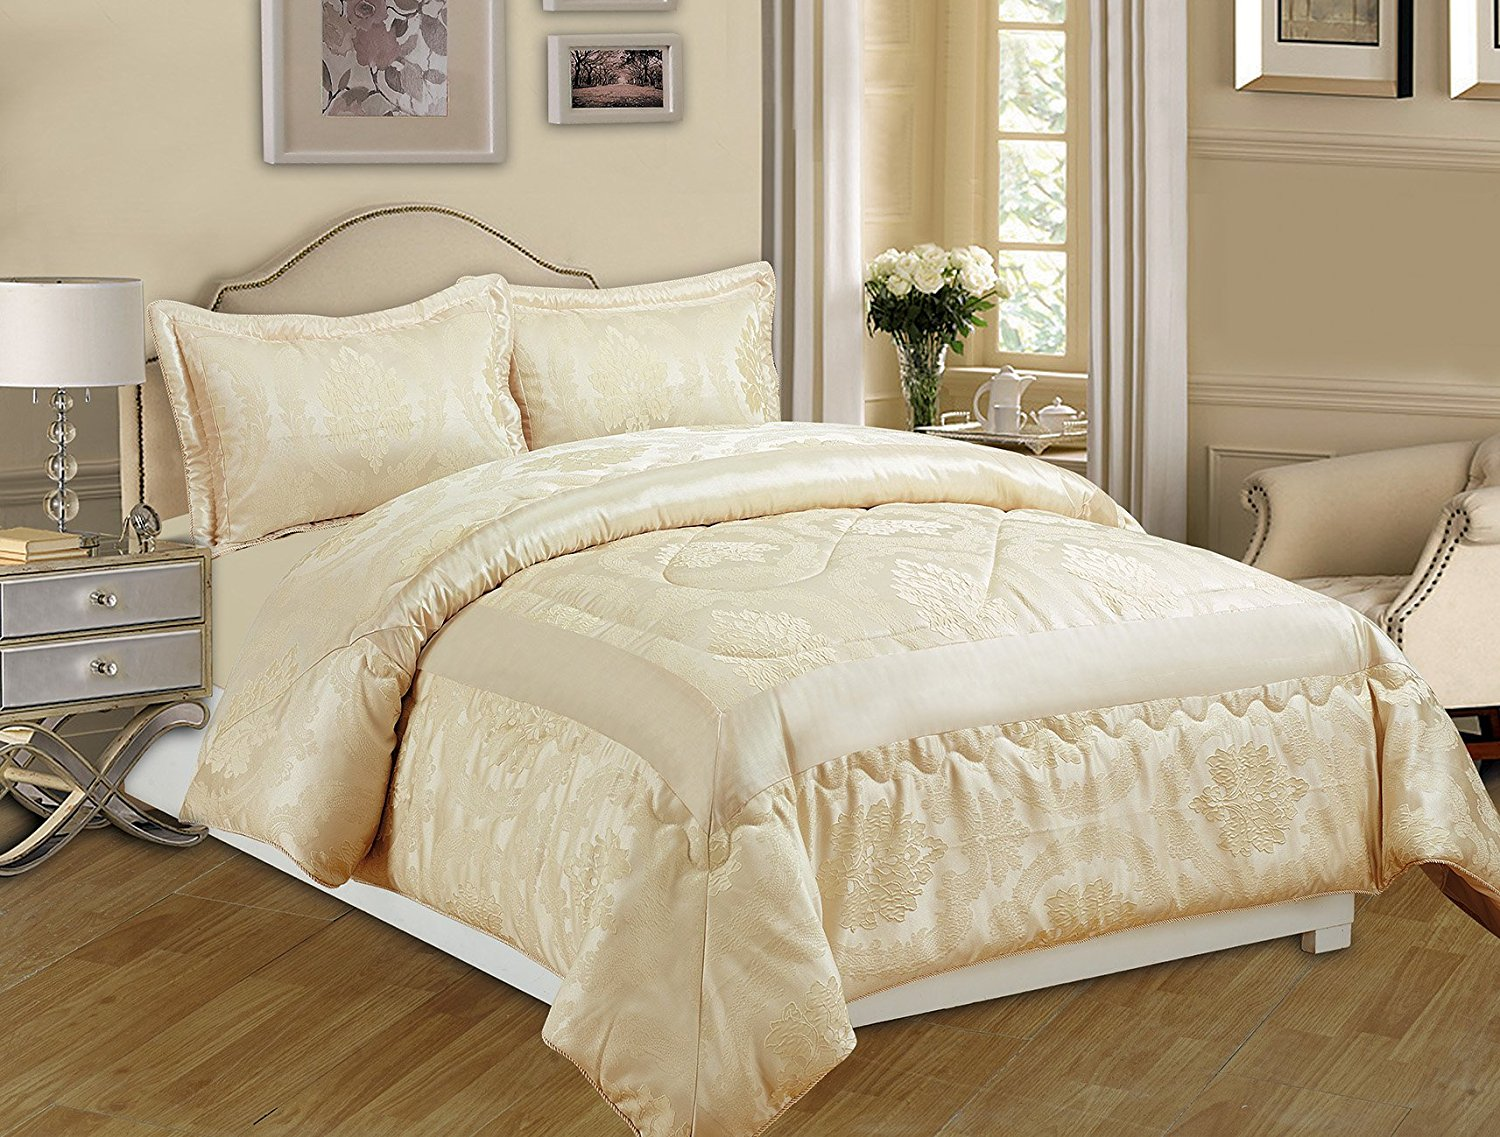 Waterford Delaney Cream Comforter Set